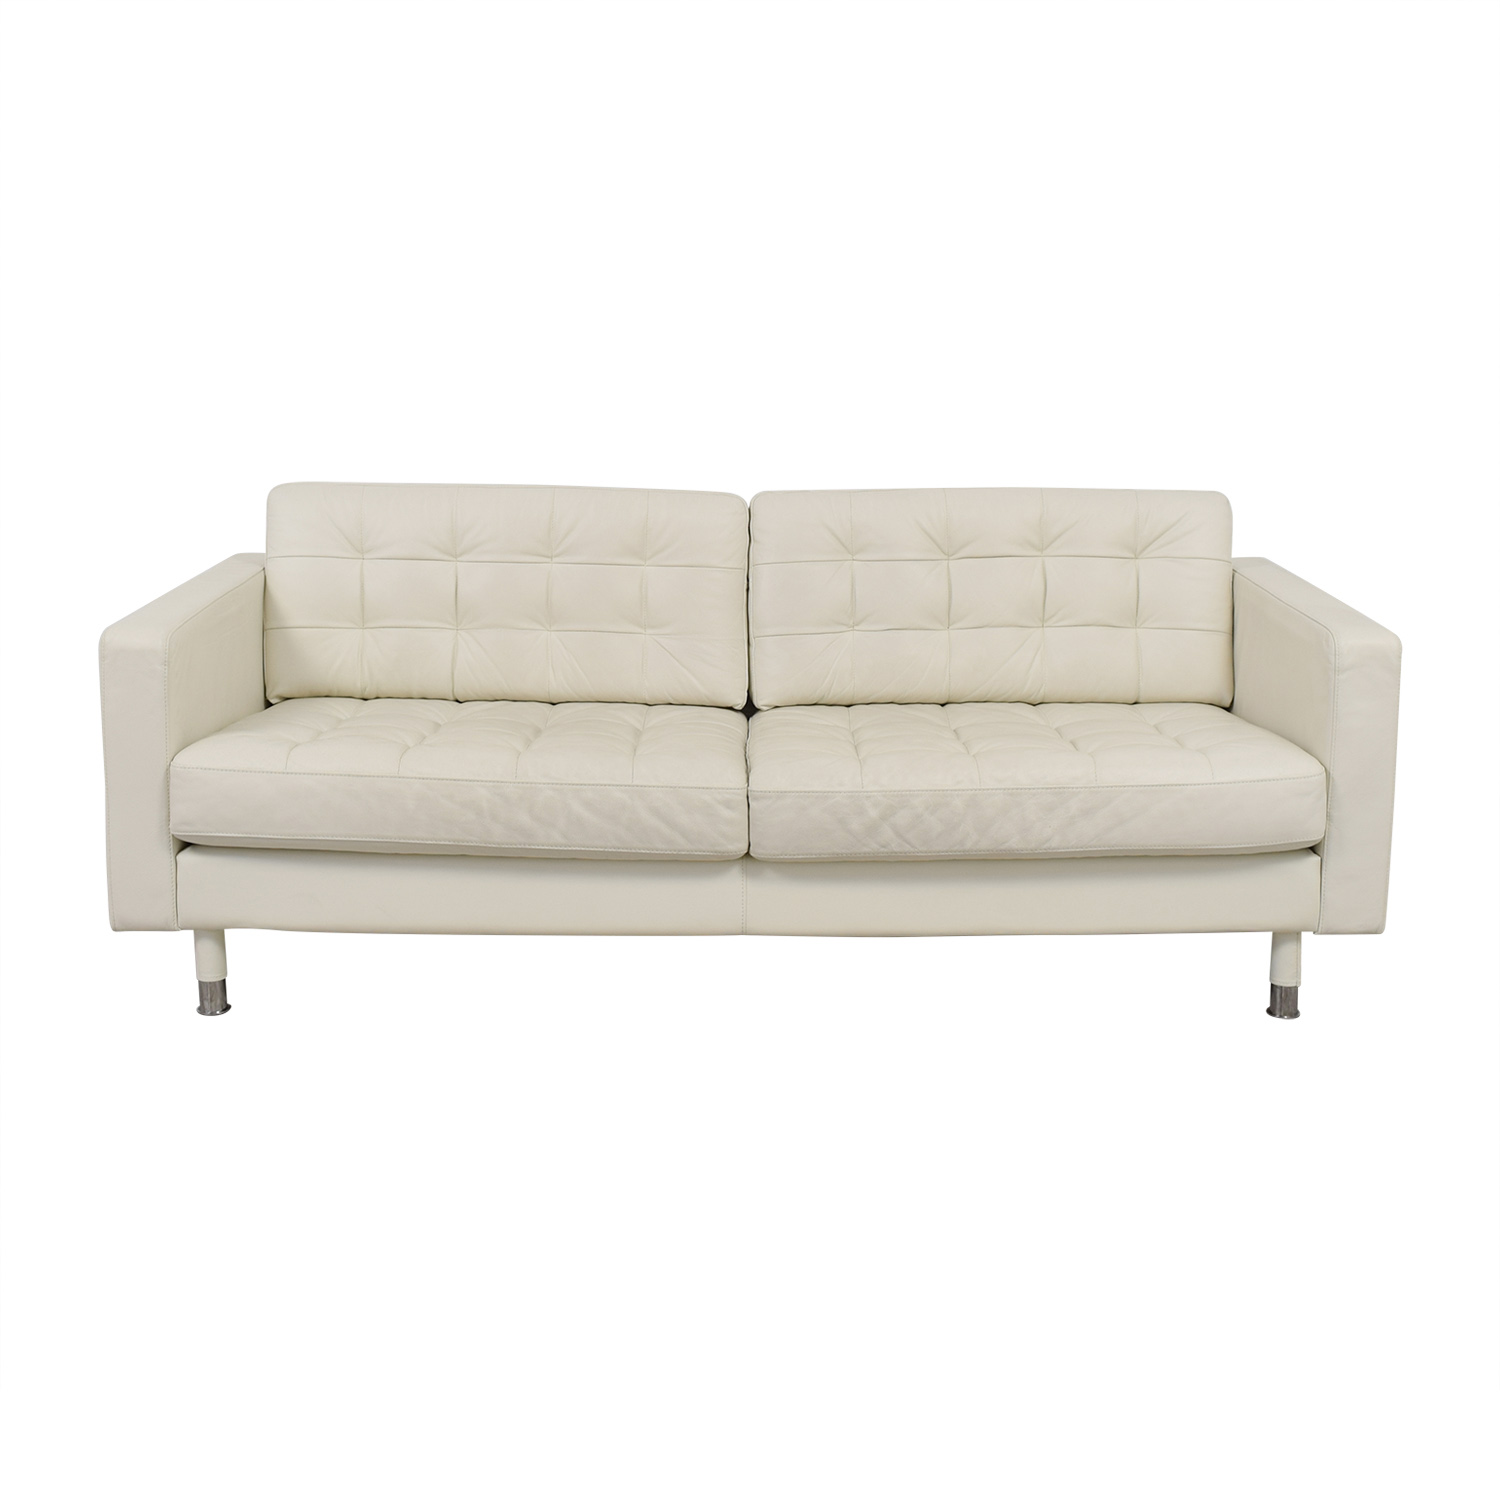 Ikea Tufted White Leather Couch Sofas